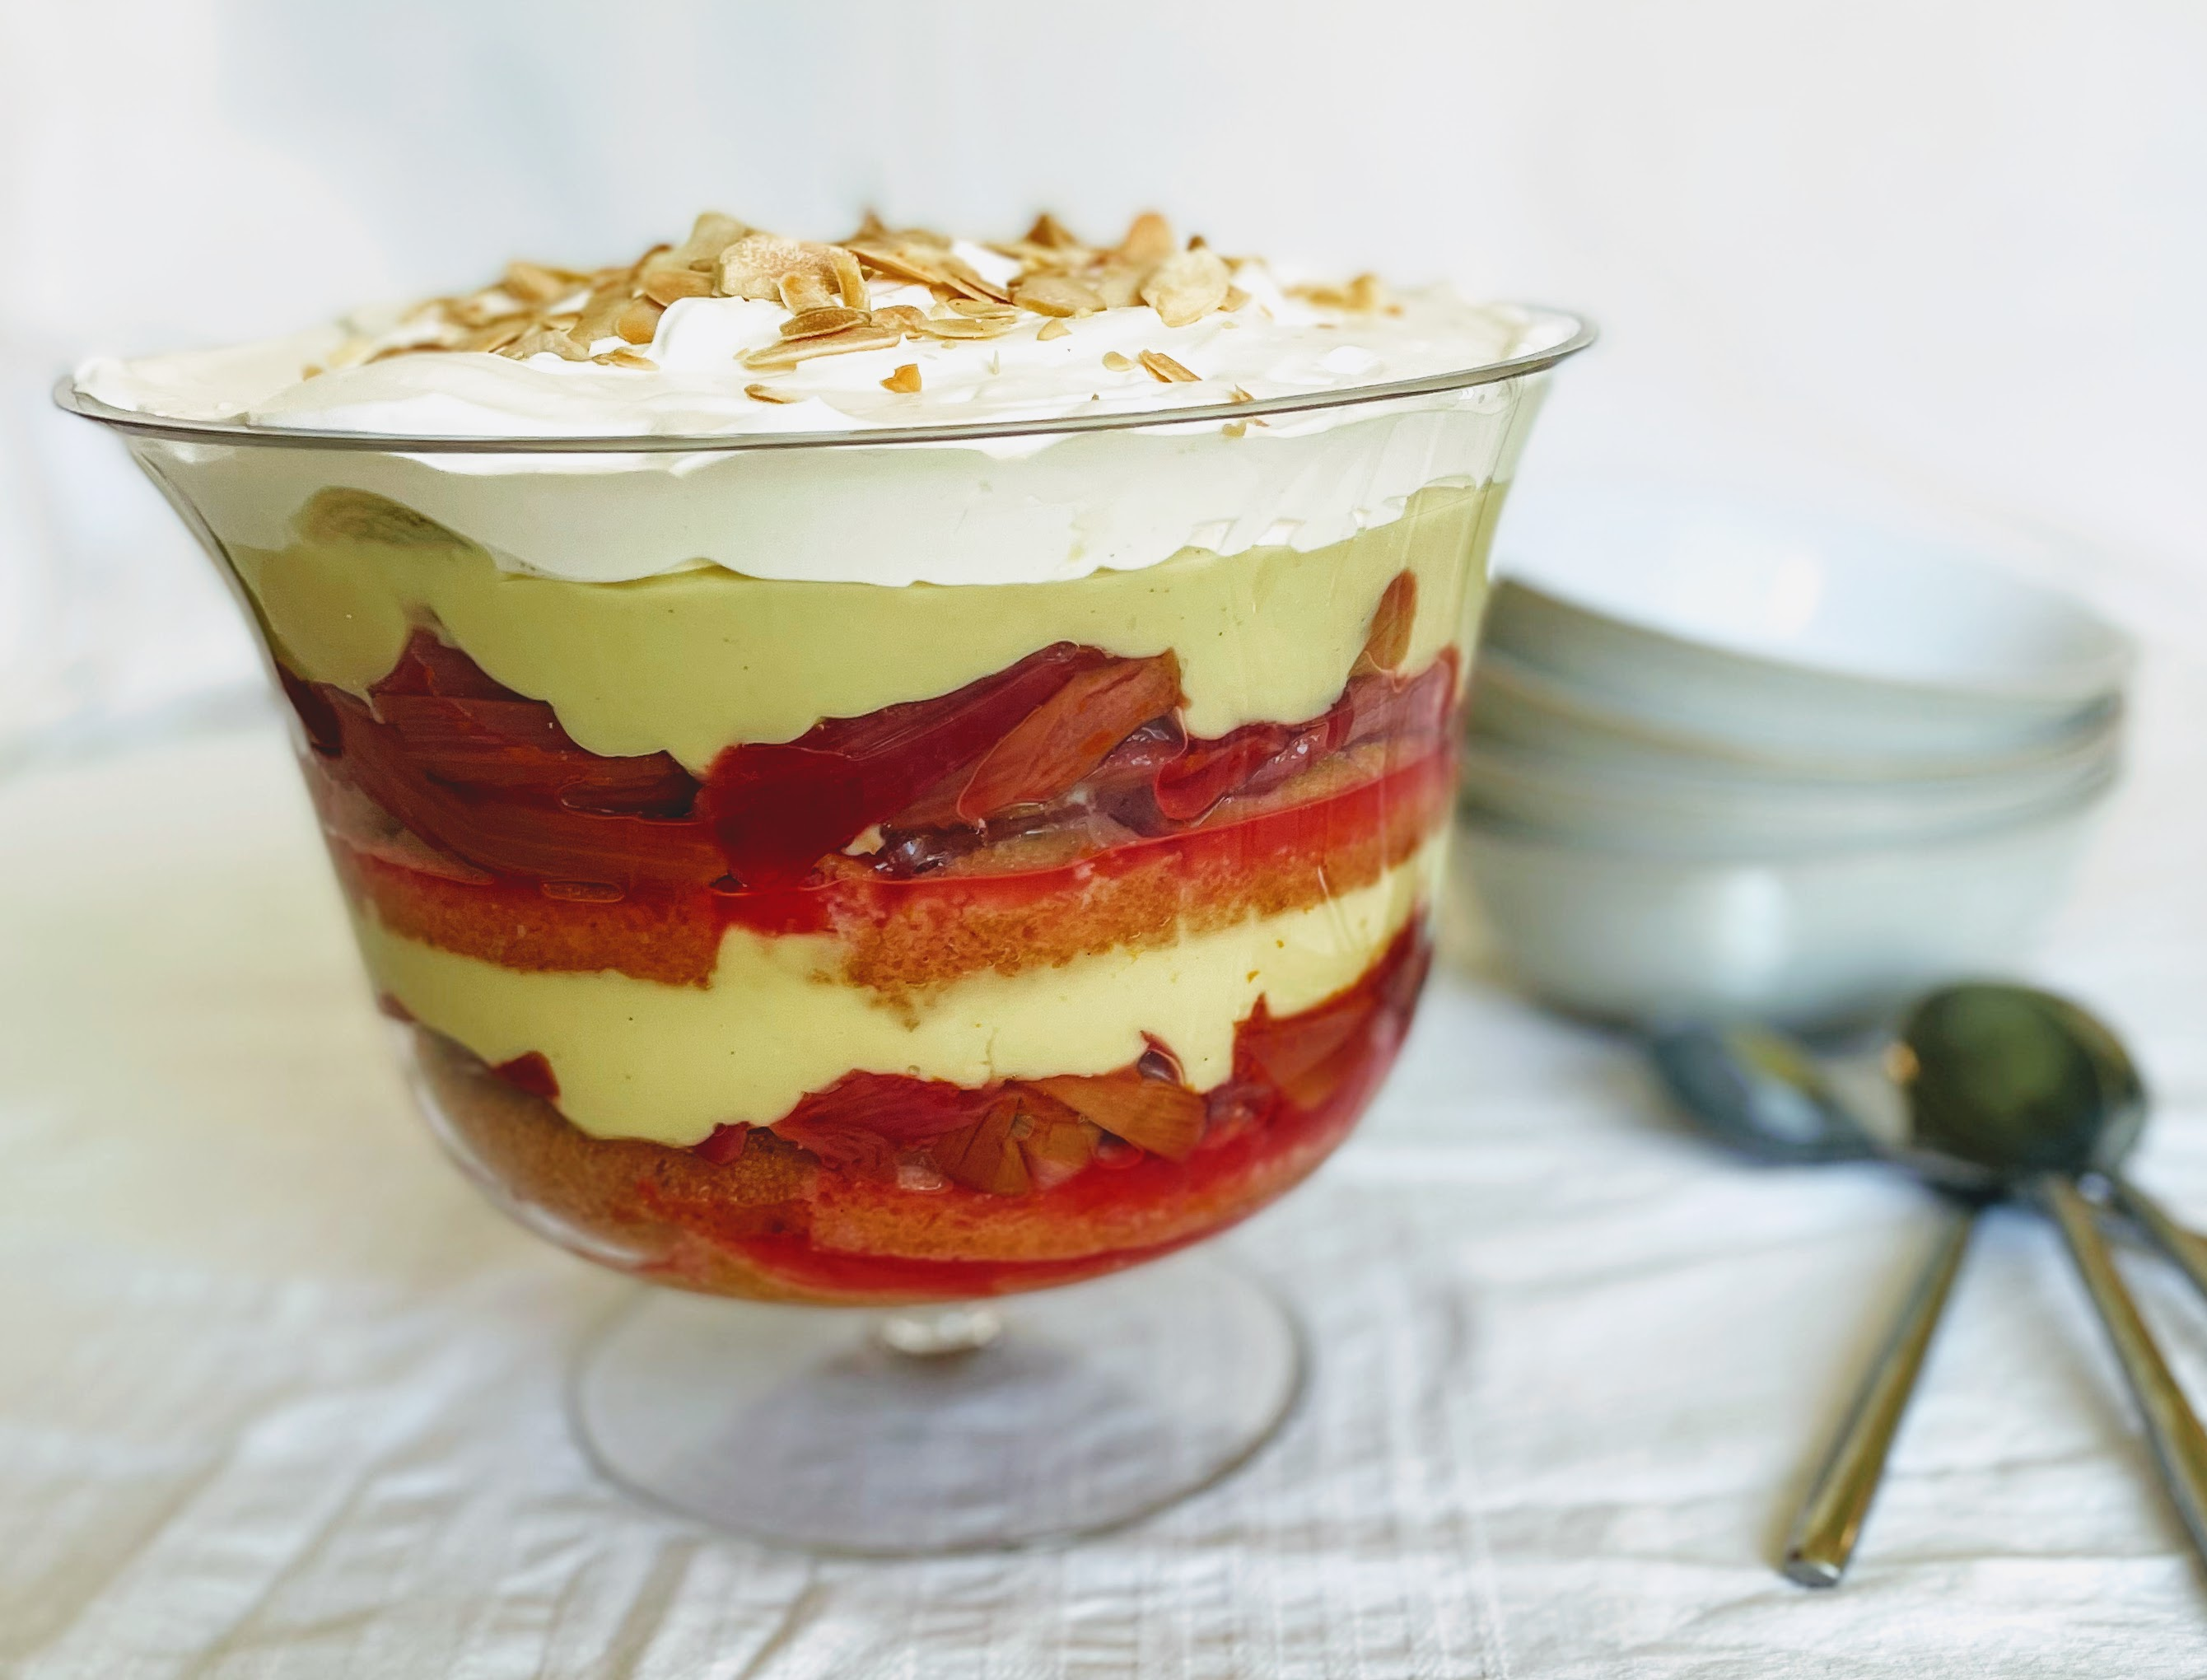 The rhubarb and custard trifle, with layers of golden sponge, vibrant pink rhubarb, creamy yellow custard, and light pillows of vegan whipped cream. There are serving bowls and spoons in the background.